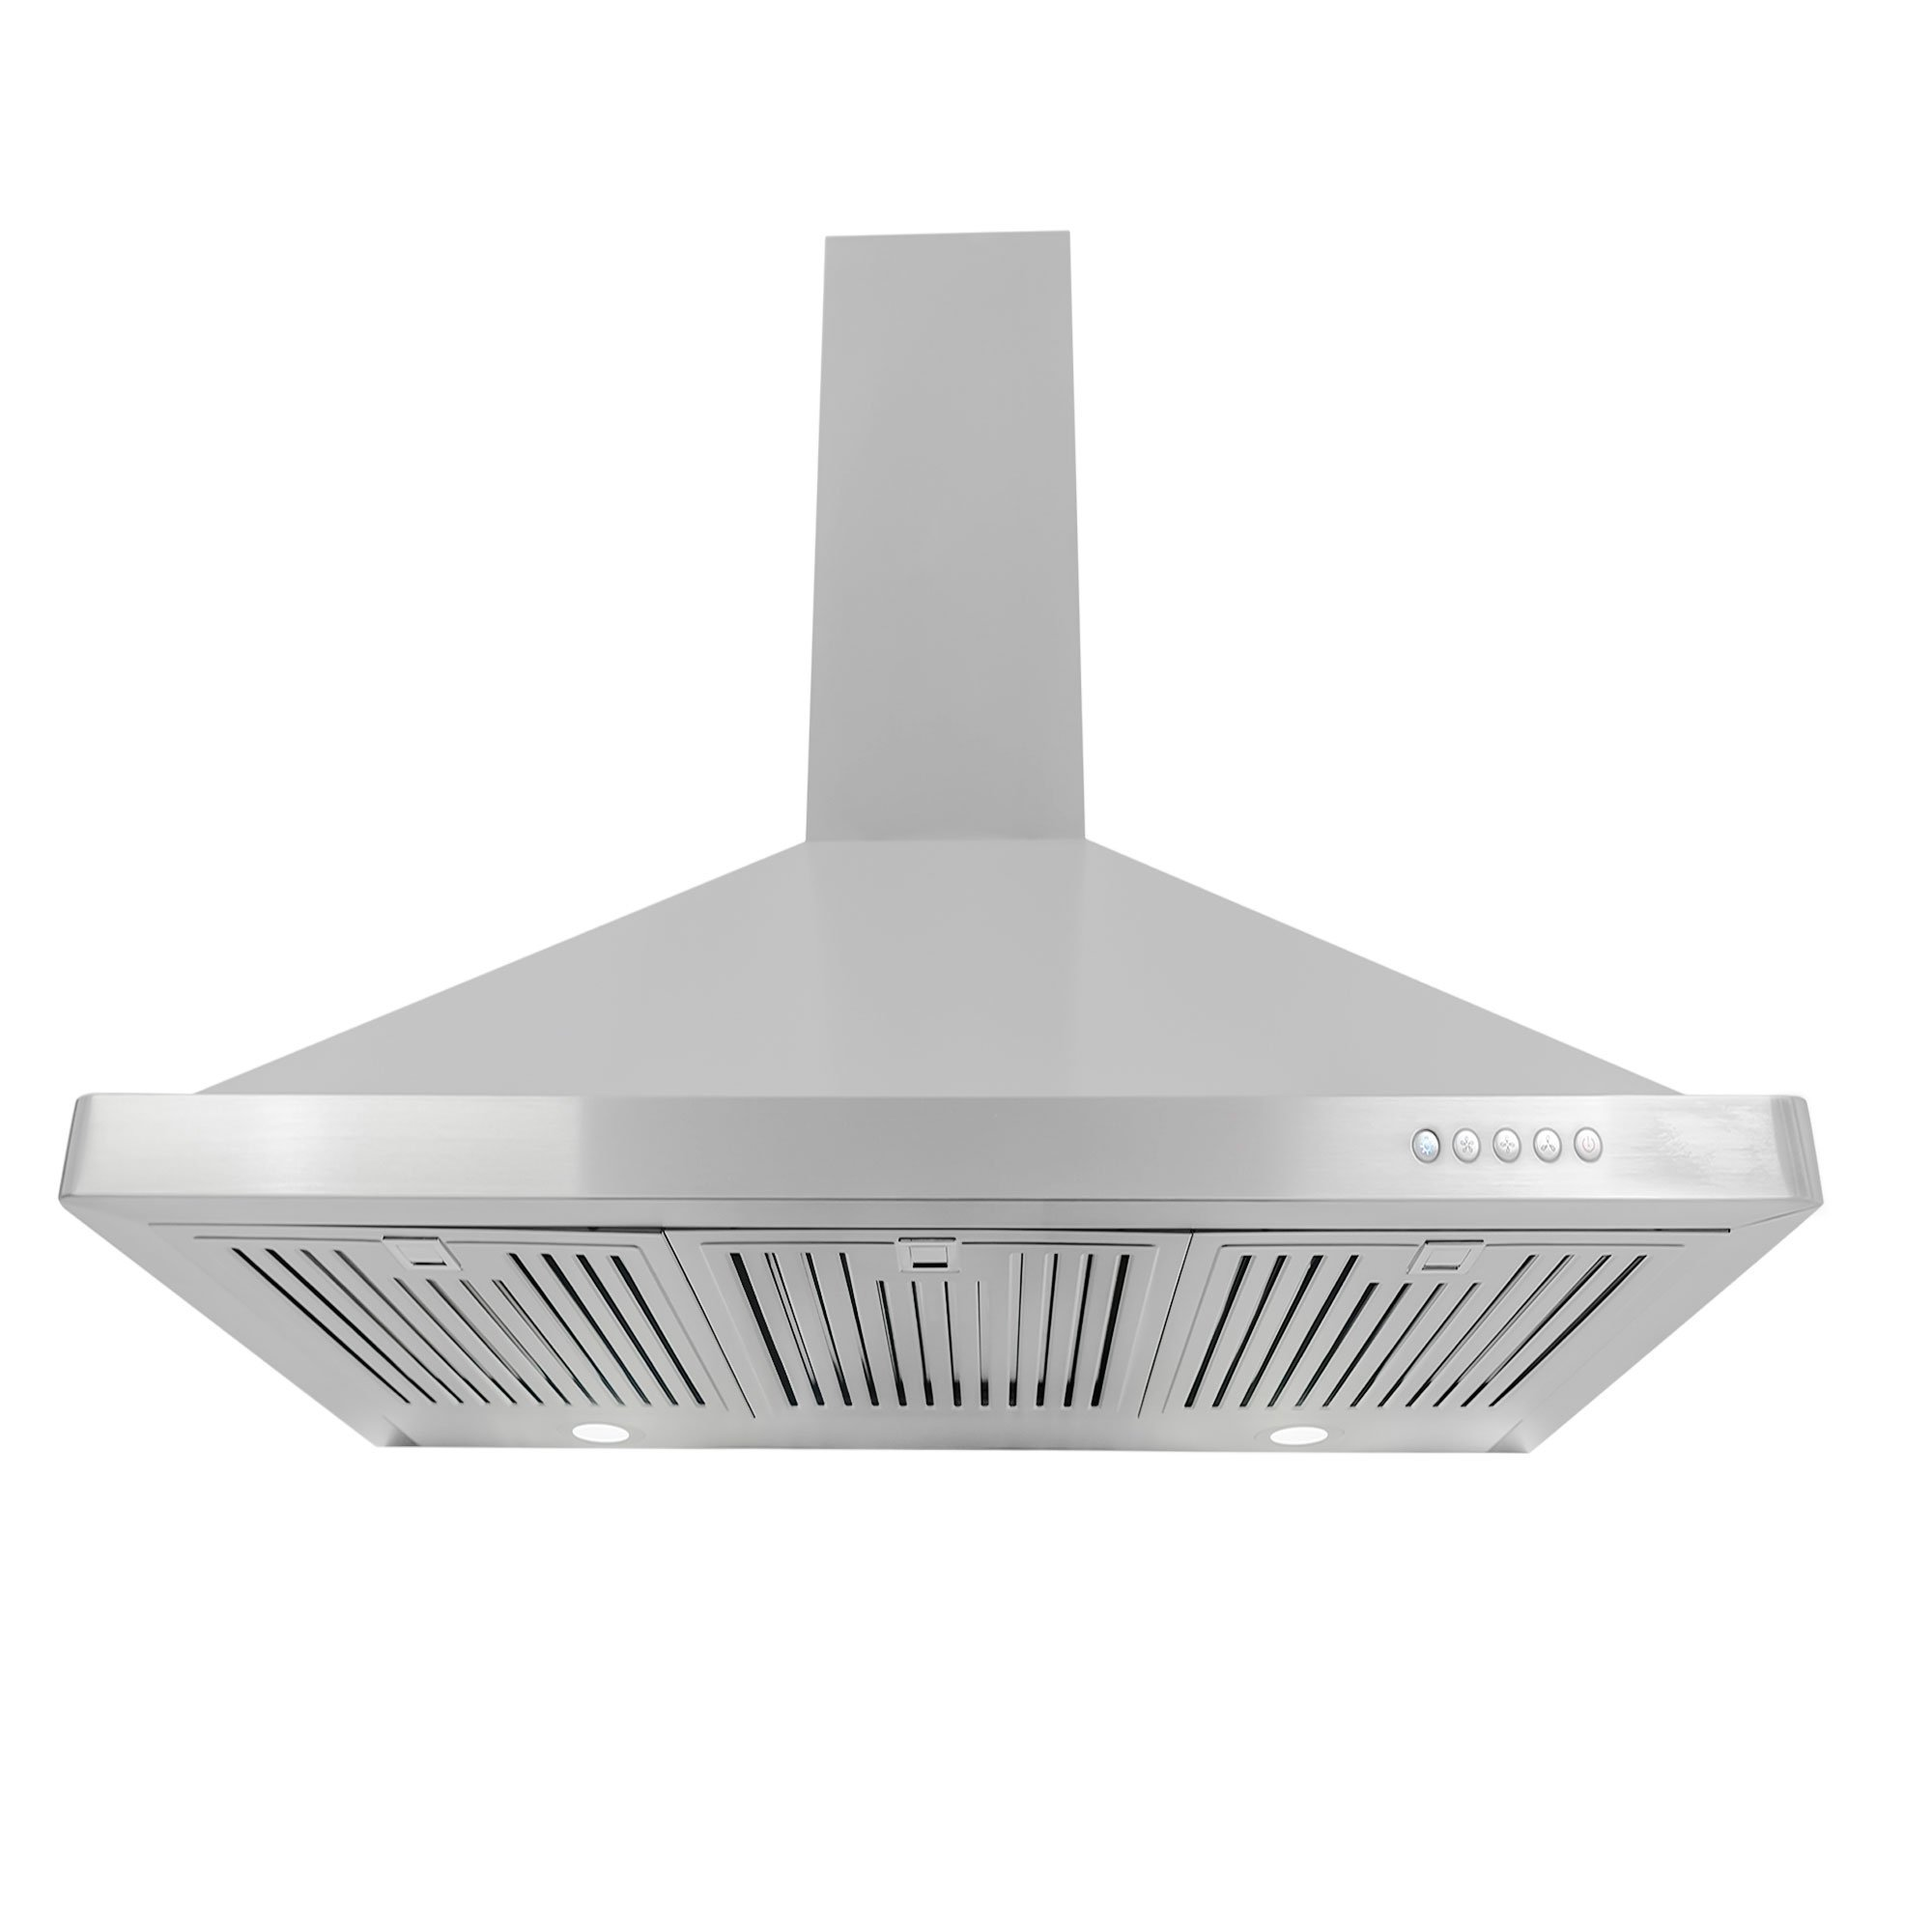 Cosmo 63190FT900 36 in. Wall Mount Range Hood with Push Button Controls, LED Lighting and Permanent Filters